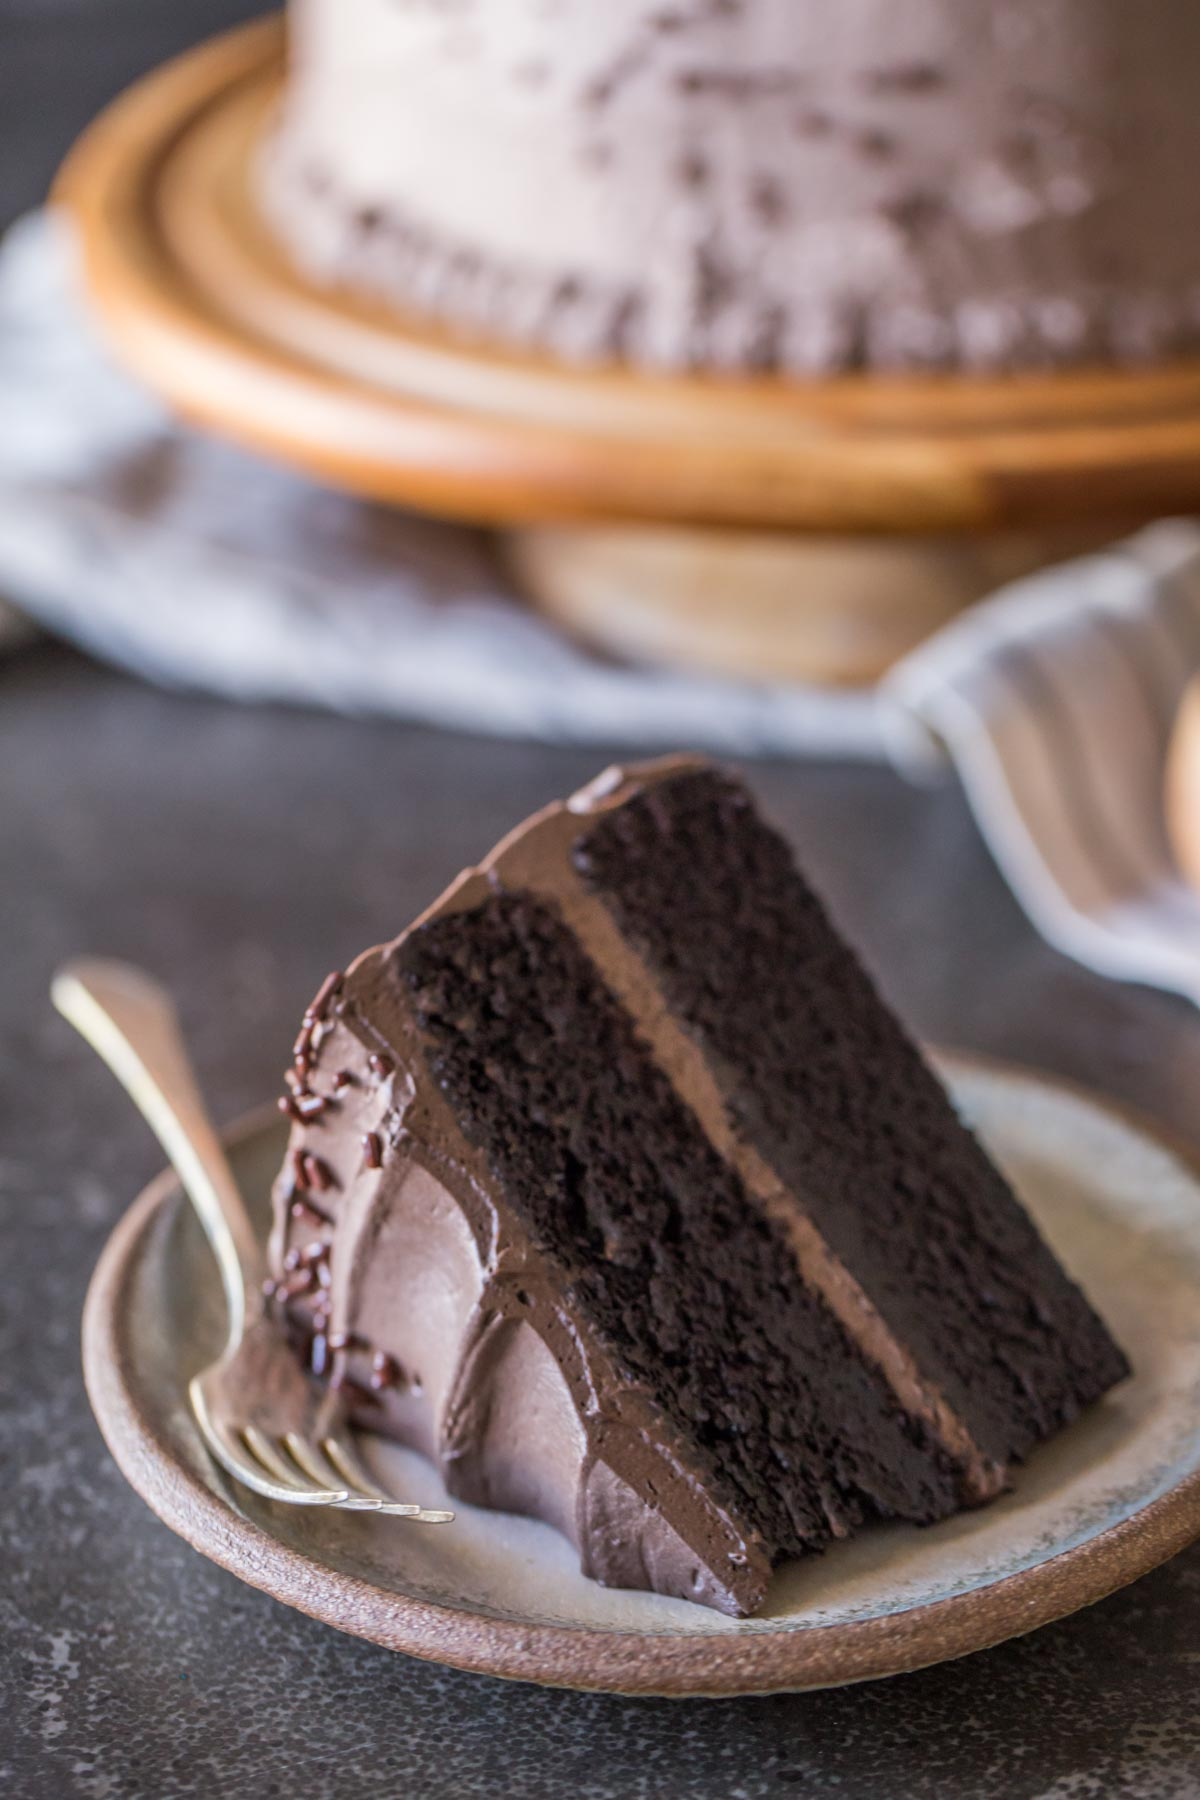 A slice of Dark Chocolate Cake With Whipped Cream Frosting on a plate with a fork, and the rest of the cake on a cake stand in the background.